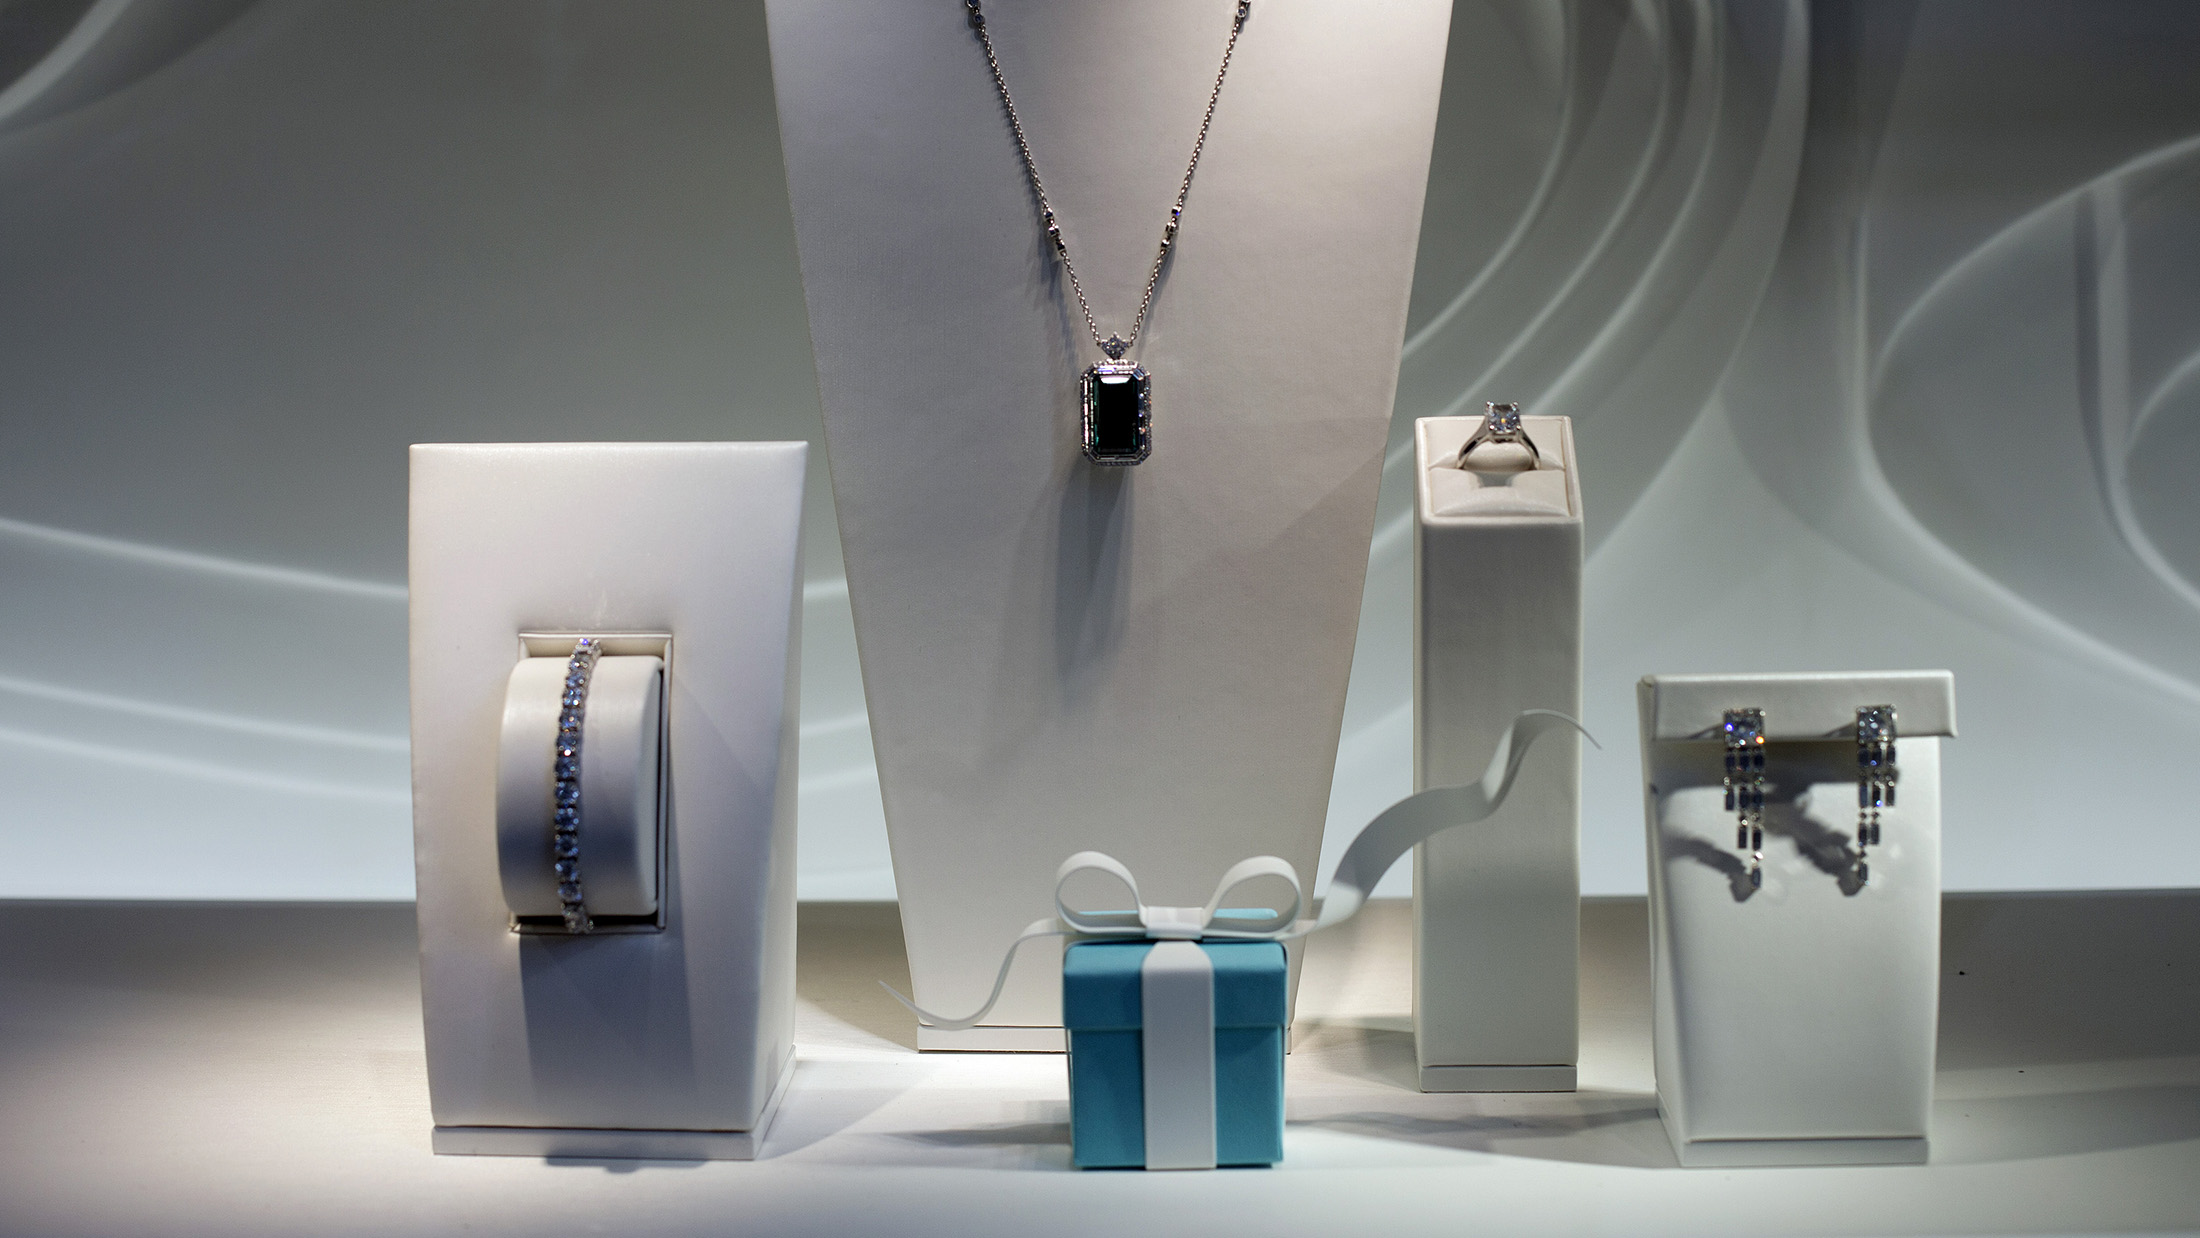 Tiffanys New Ceo Faces Jewelry Industry Thats Lost Allure Bloomberg